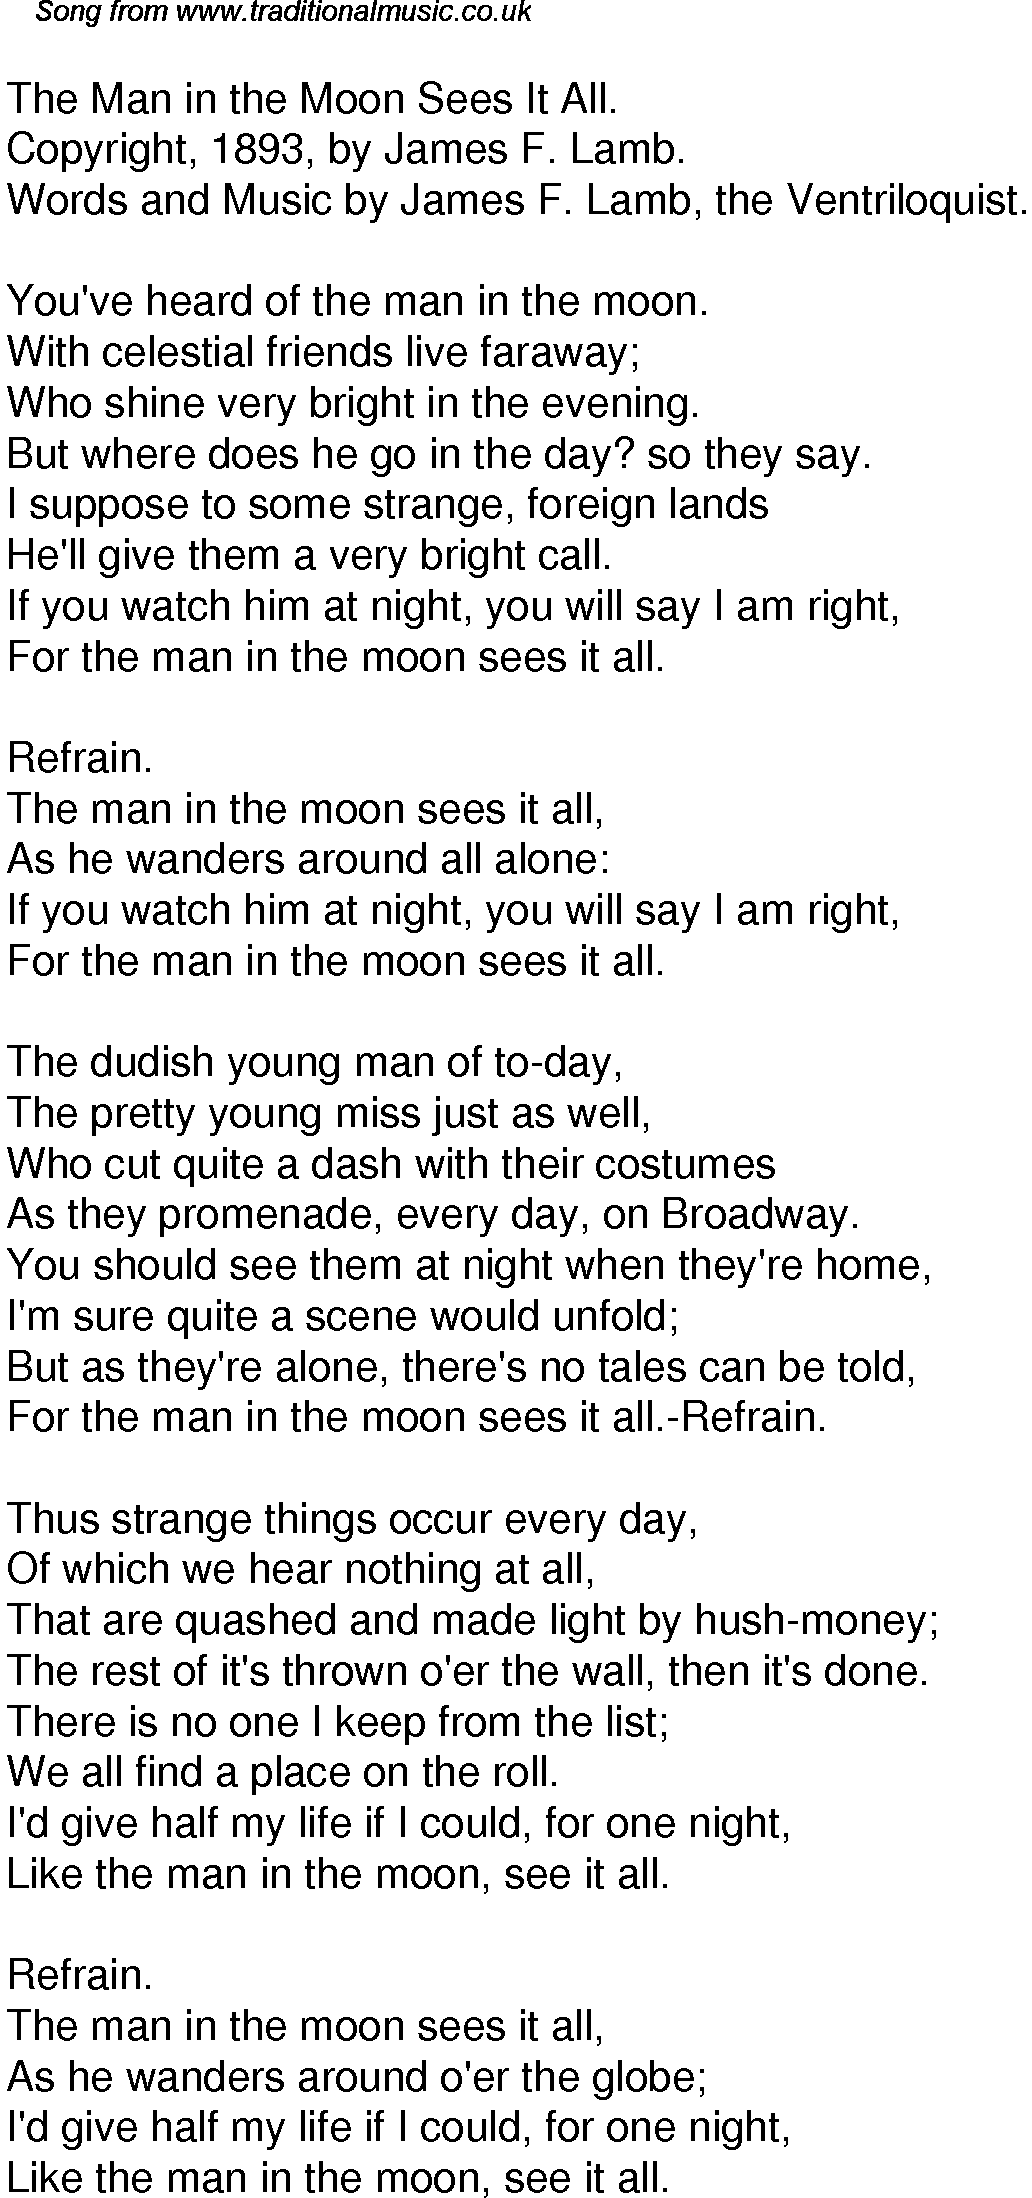 Old Time Song Lyrics for 39 The Man In The Moon Sees It All